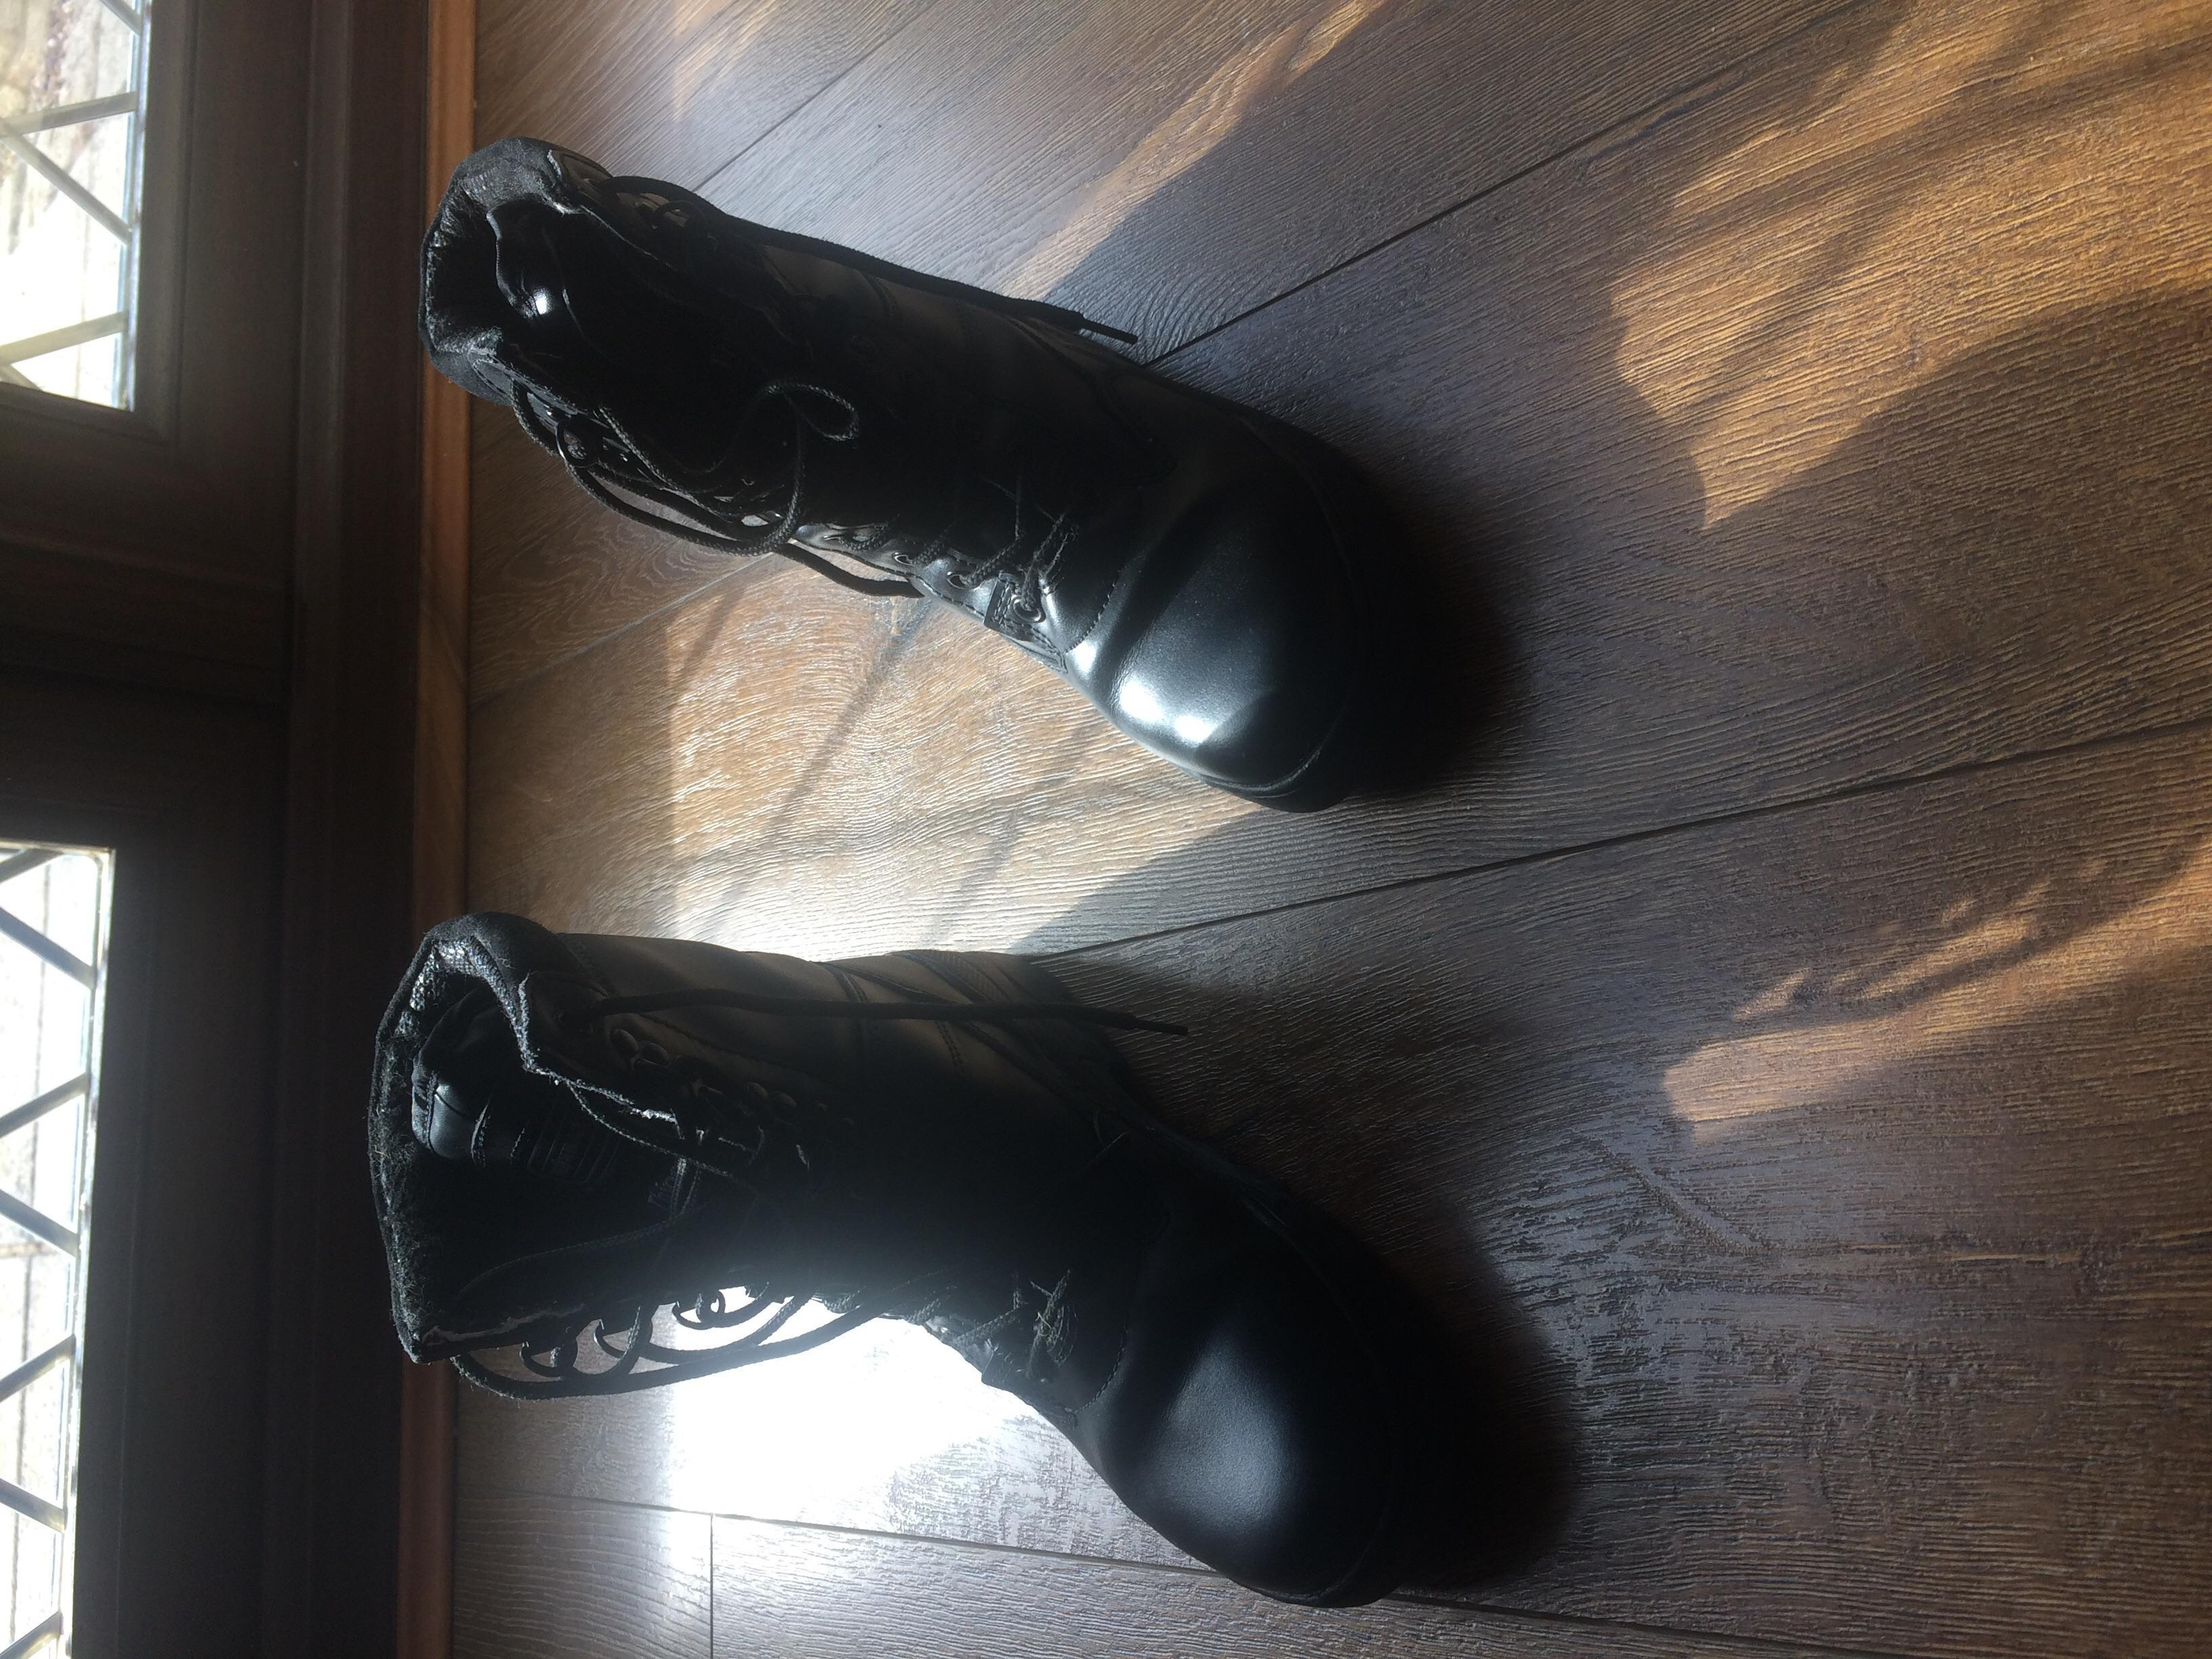 b42d5aee015 Kombat patrol boots in Belper - Expired | Friday-Ad